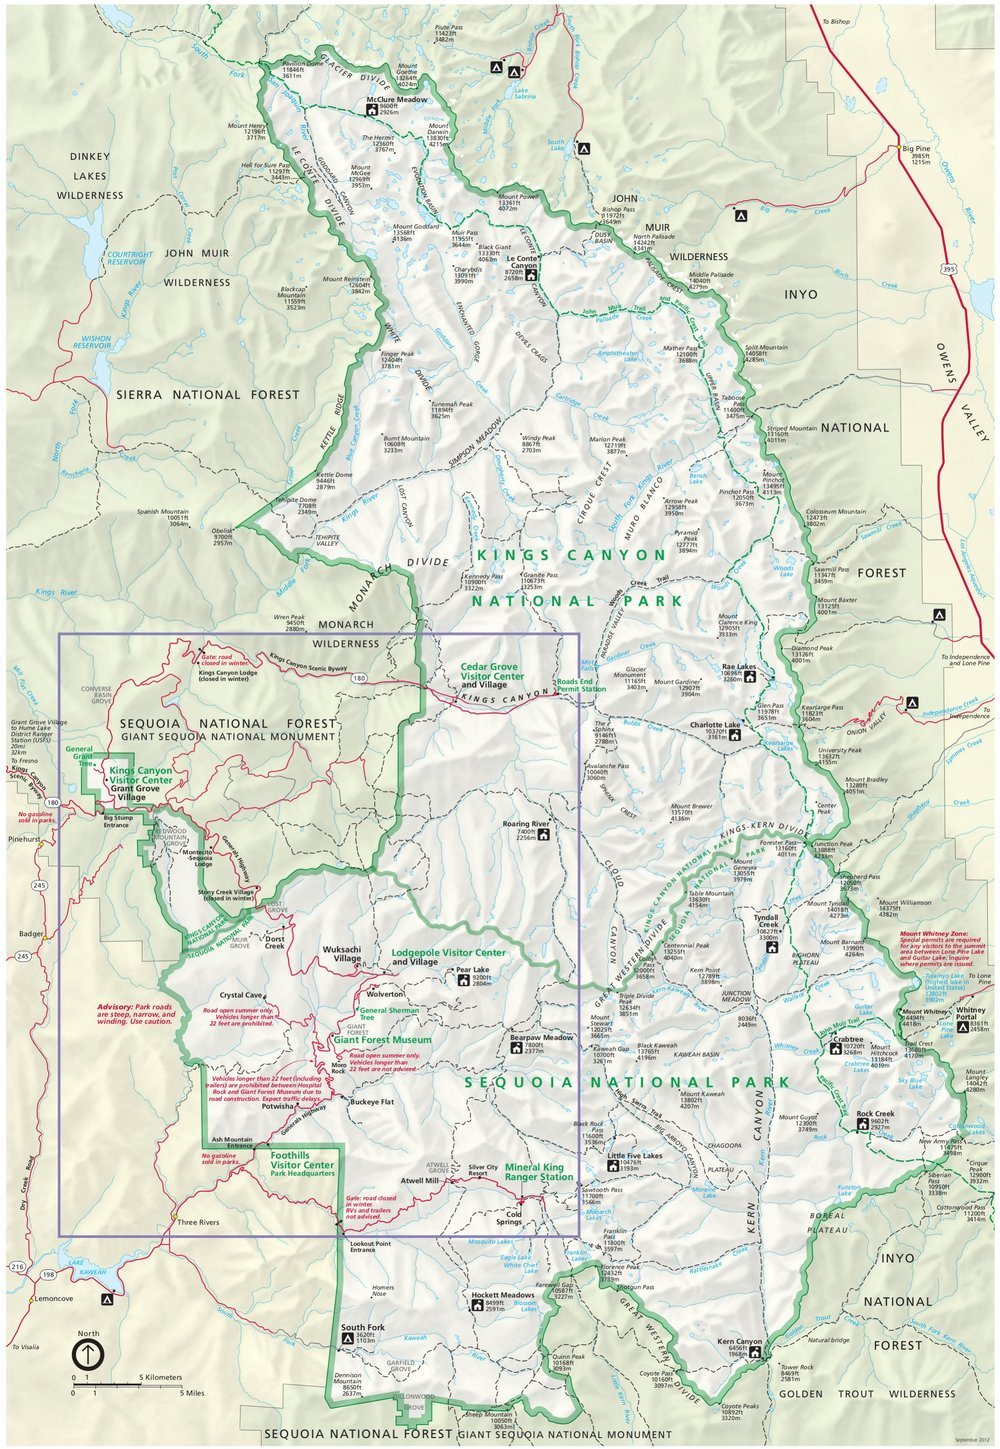 Sequoia and Kings Canyon National Parks are just east of Fresno, CA. Map from the U.S. National Park Service.